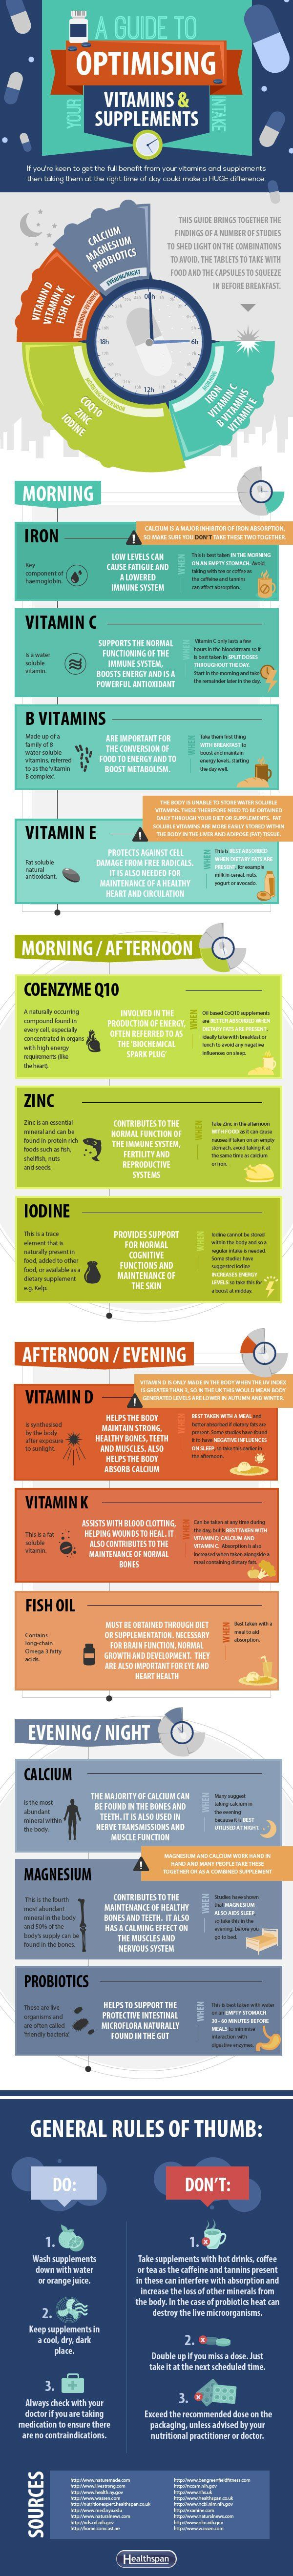 When To Take Vitamins-A Helpful Infographic That Ensures You're Not Just Making Expensive Pee.